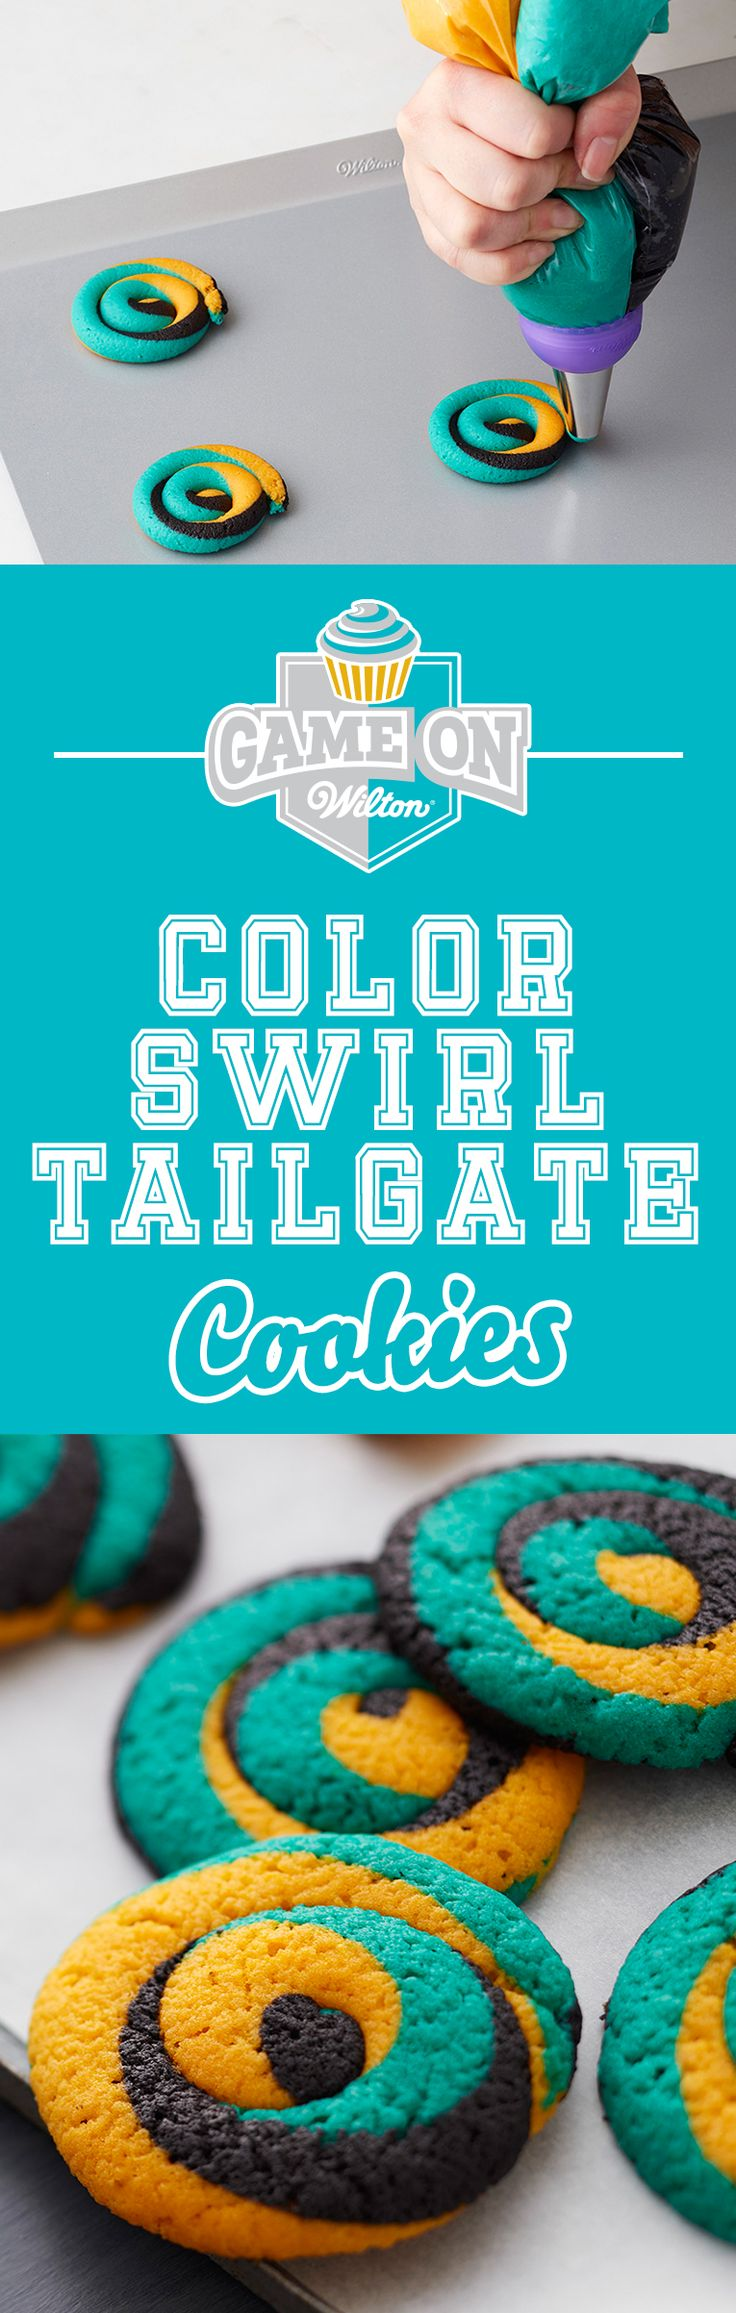 Learn to make these Tailgate Cookies that show off your favorite team colors! This easy-to-make cookie dough recipe is also easy to color so you can show off your spirit at any football game, tailgate, cookout, youth sports event or just any time you feel like a treat! Use the Wilton Color Swirl 3-Color Coupler to seamlessly pipe three icing colors in one stroke.